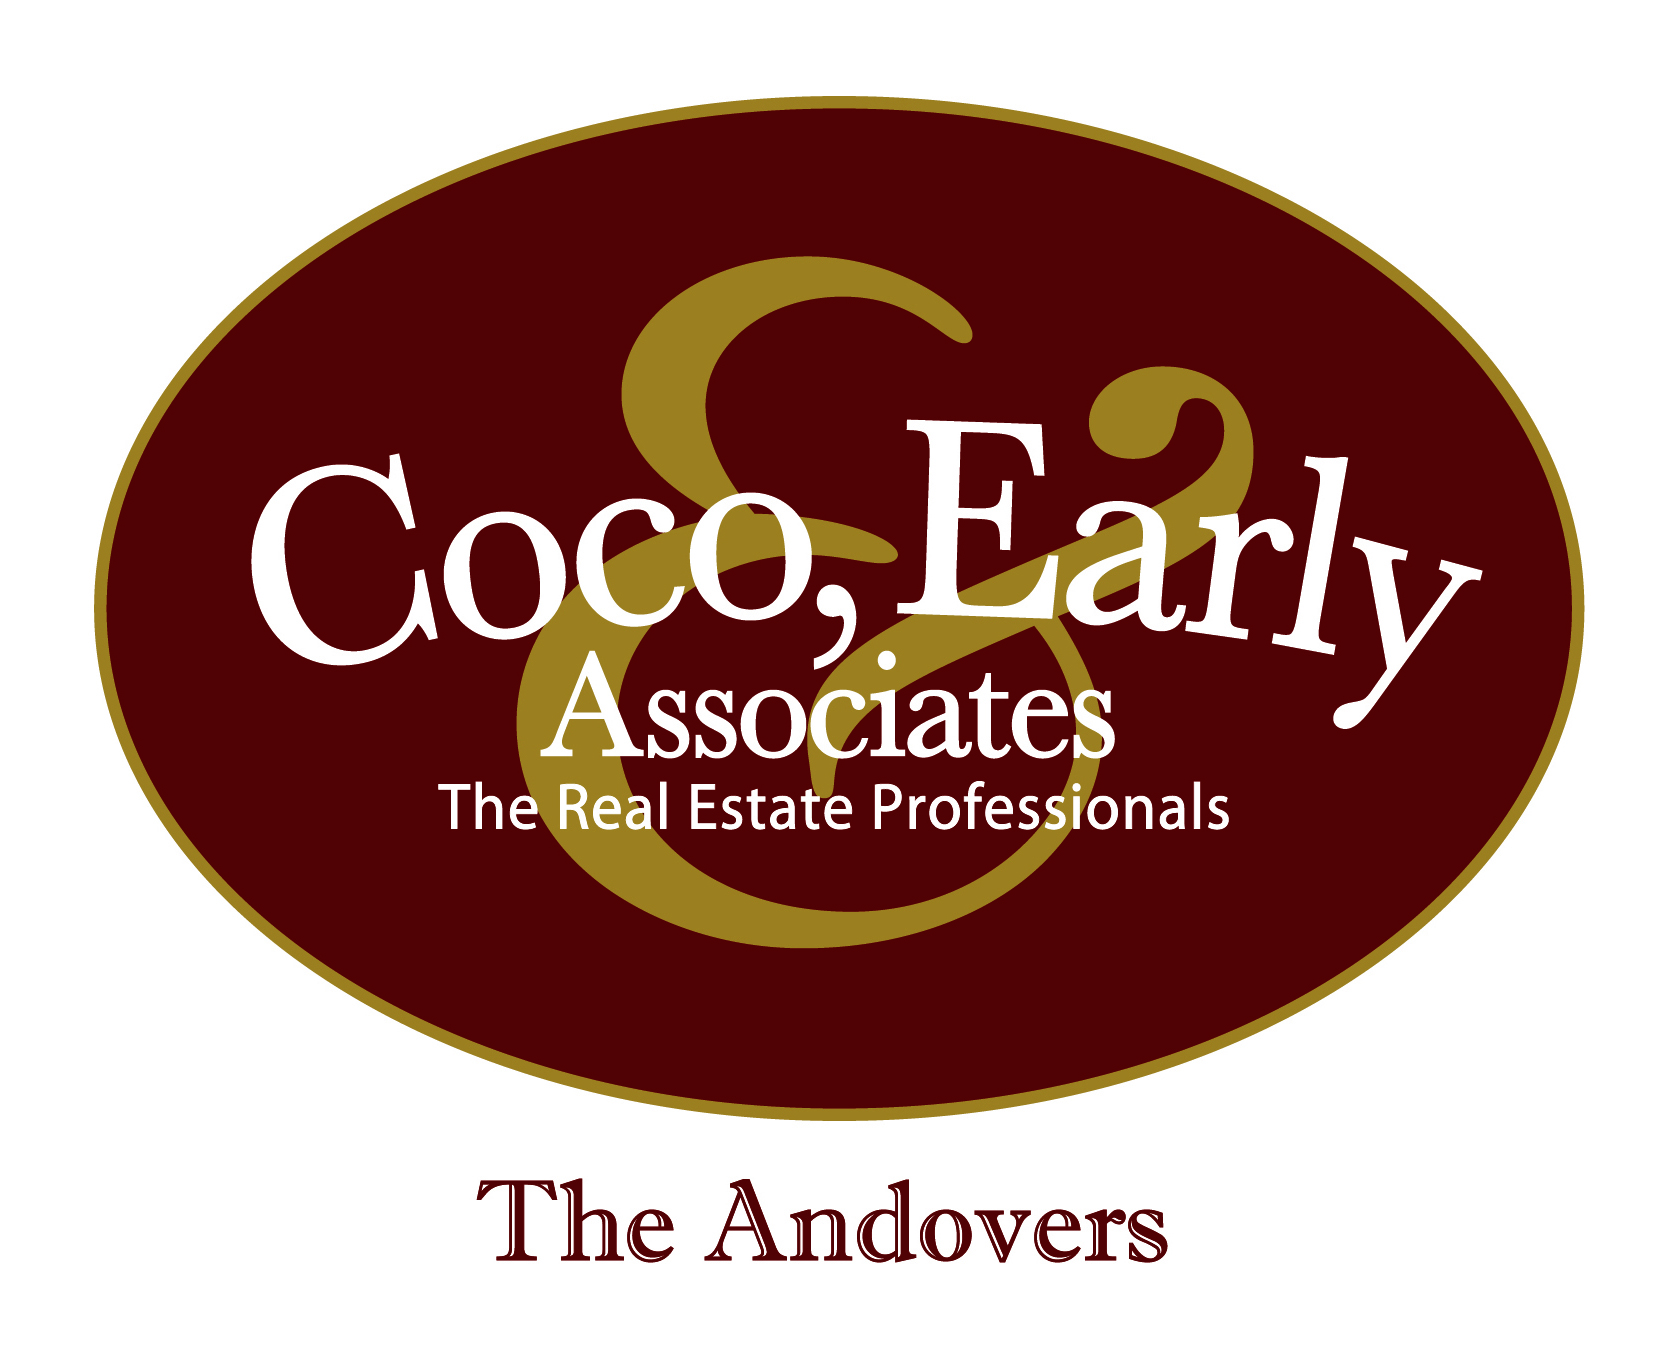 Coco, Early & Associates The Andovers